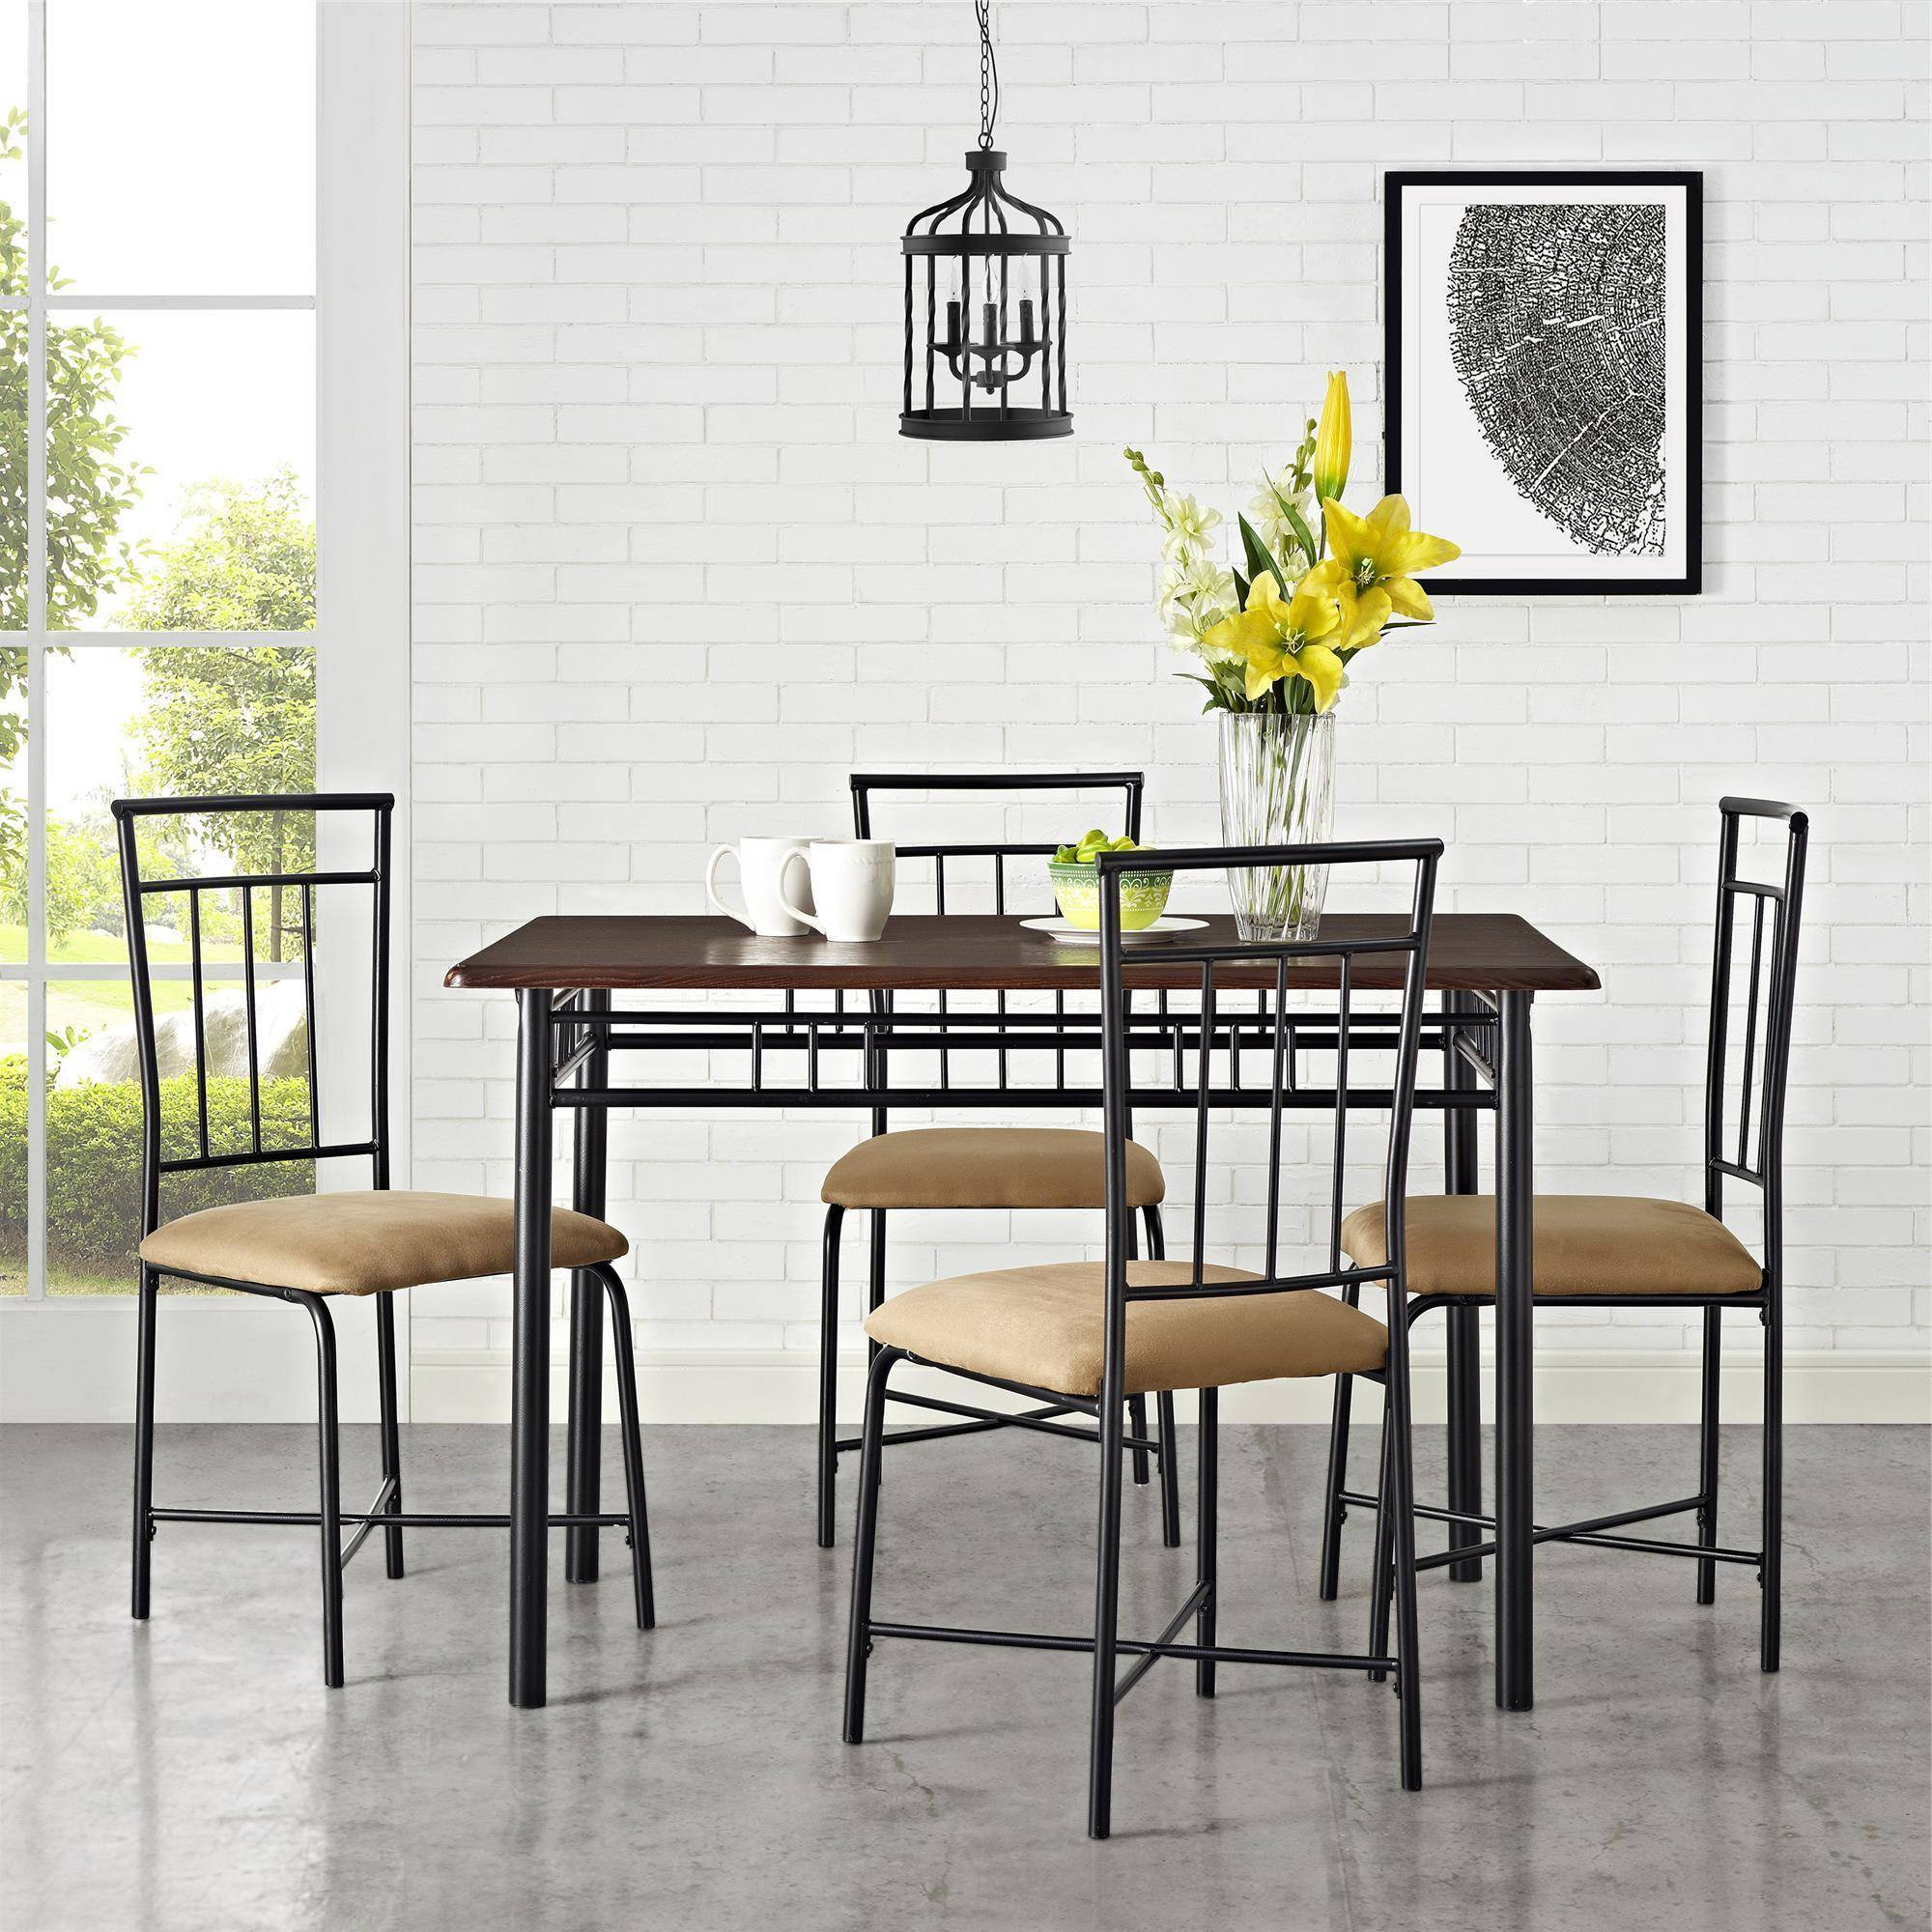 Rossiter 3 Piece Dining Sets With Favorite Metropolitan 3 Piece Dining Set, Multiple Finishes (View 14 of 20)